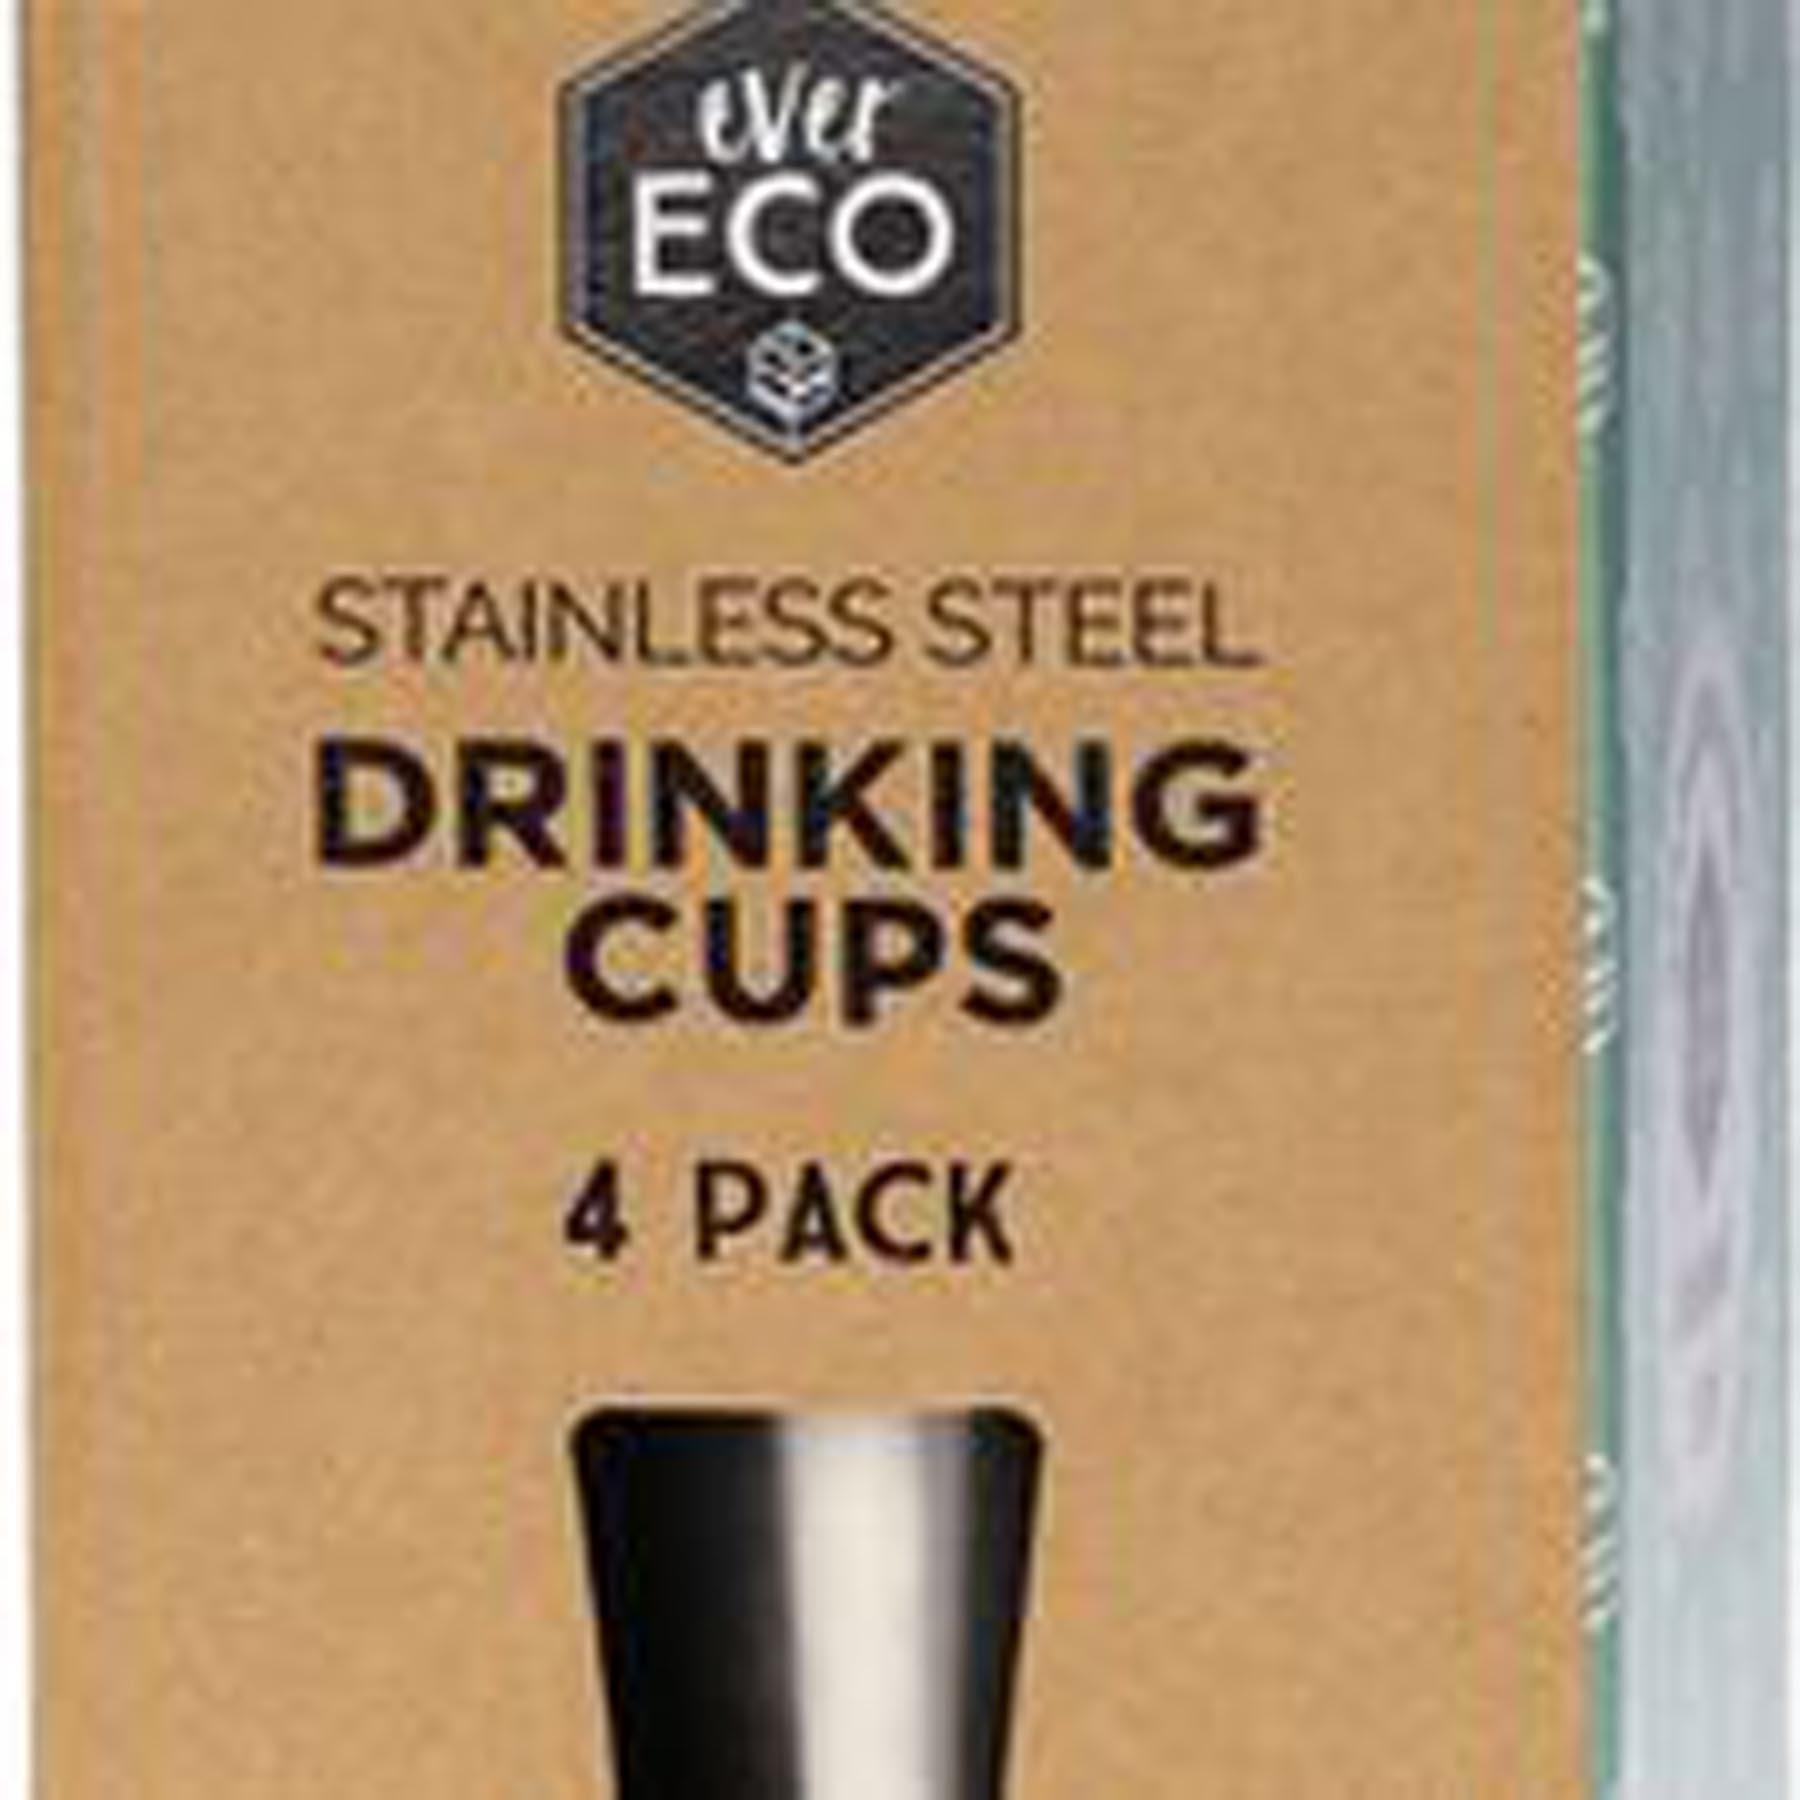 EVER ECO STAINLESS STEEL DRINKING CUPS WWW.MOTHERBYNATURE.COM.AU 500ml